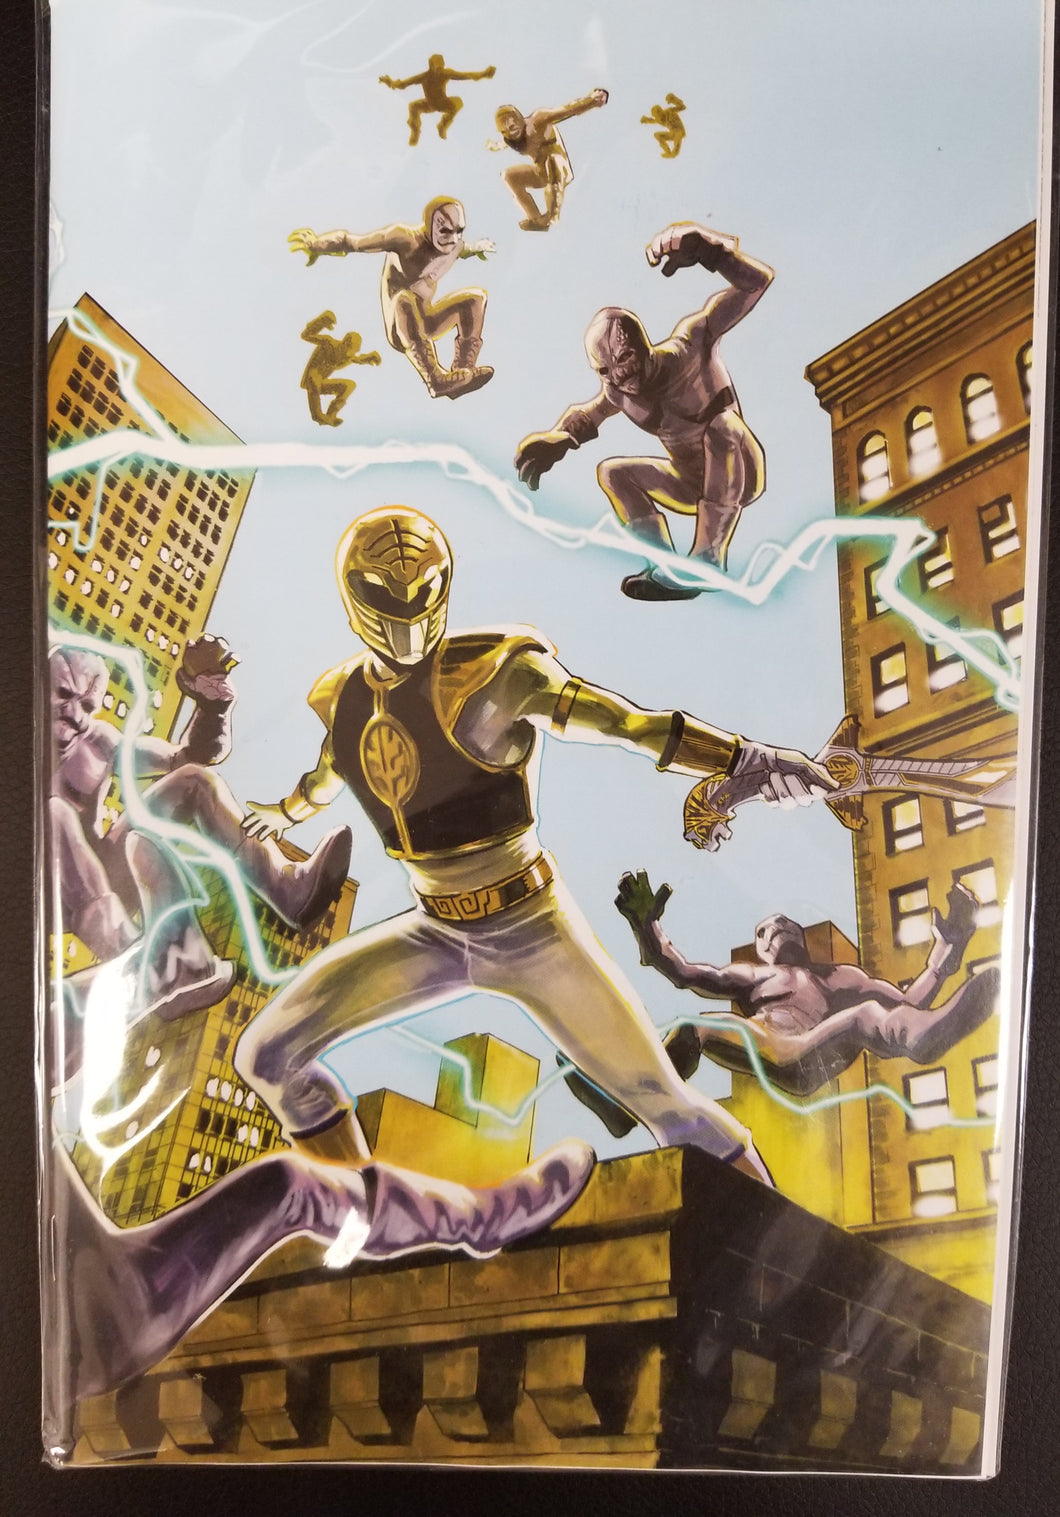 Mighty Morphin Power Rangers #44 Jolzar Collectibles Exclusive Journey into Mystery 83 Homage